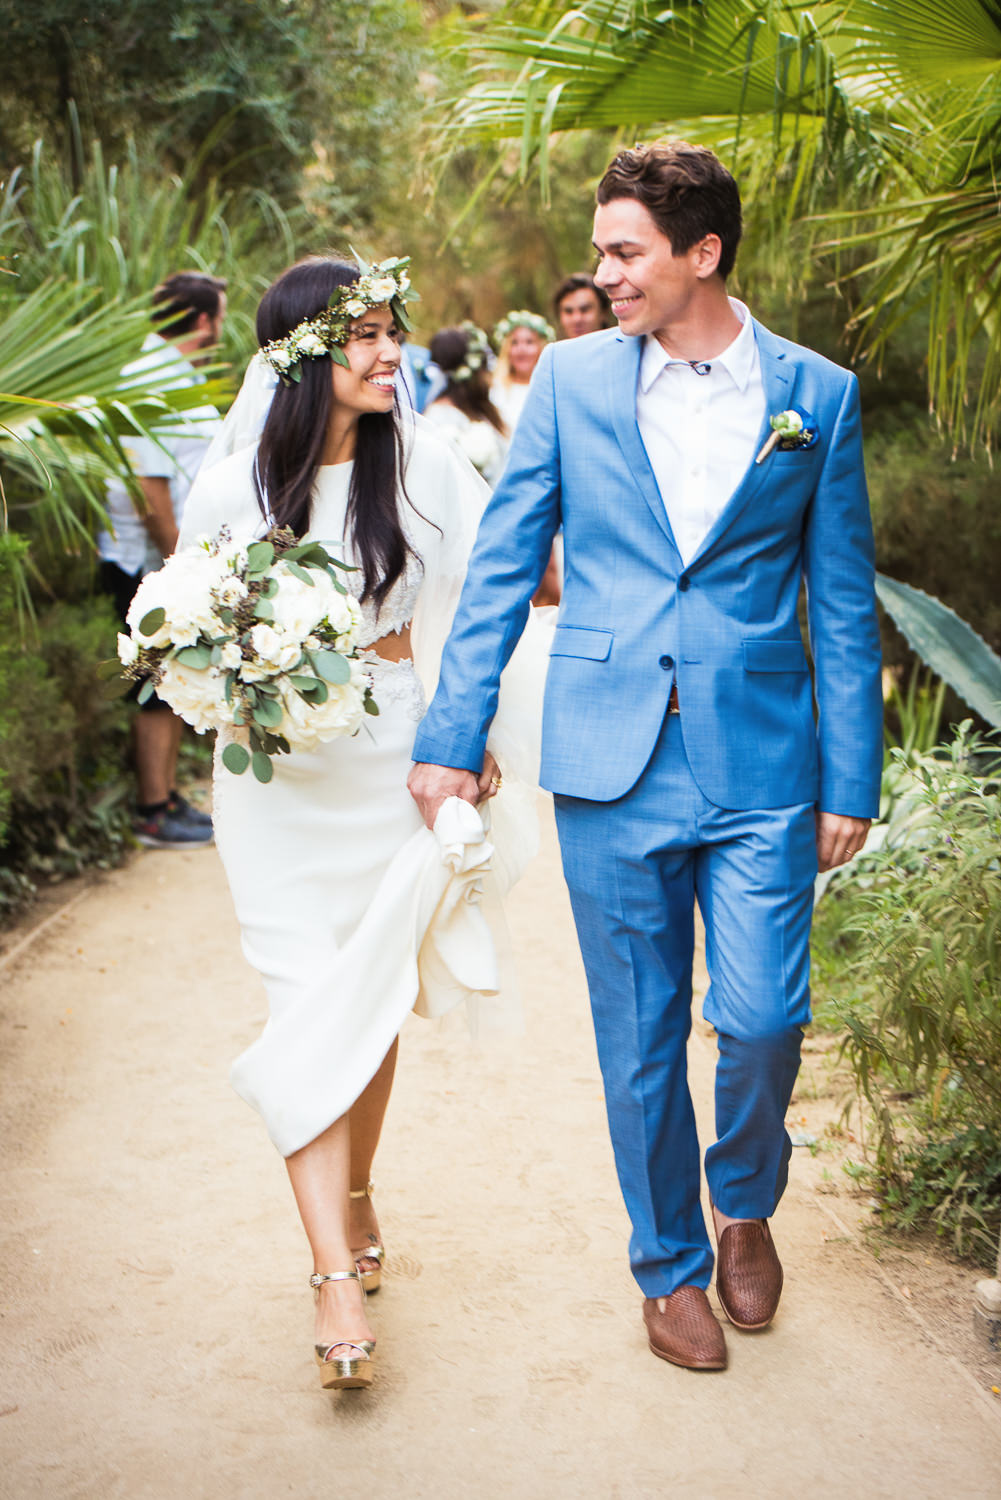 Parker Palm Springs Wedding - Hand in Hand After Ceremony